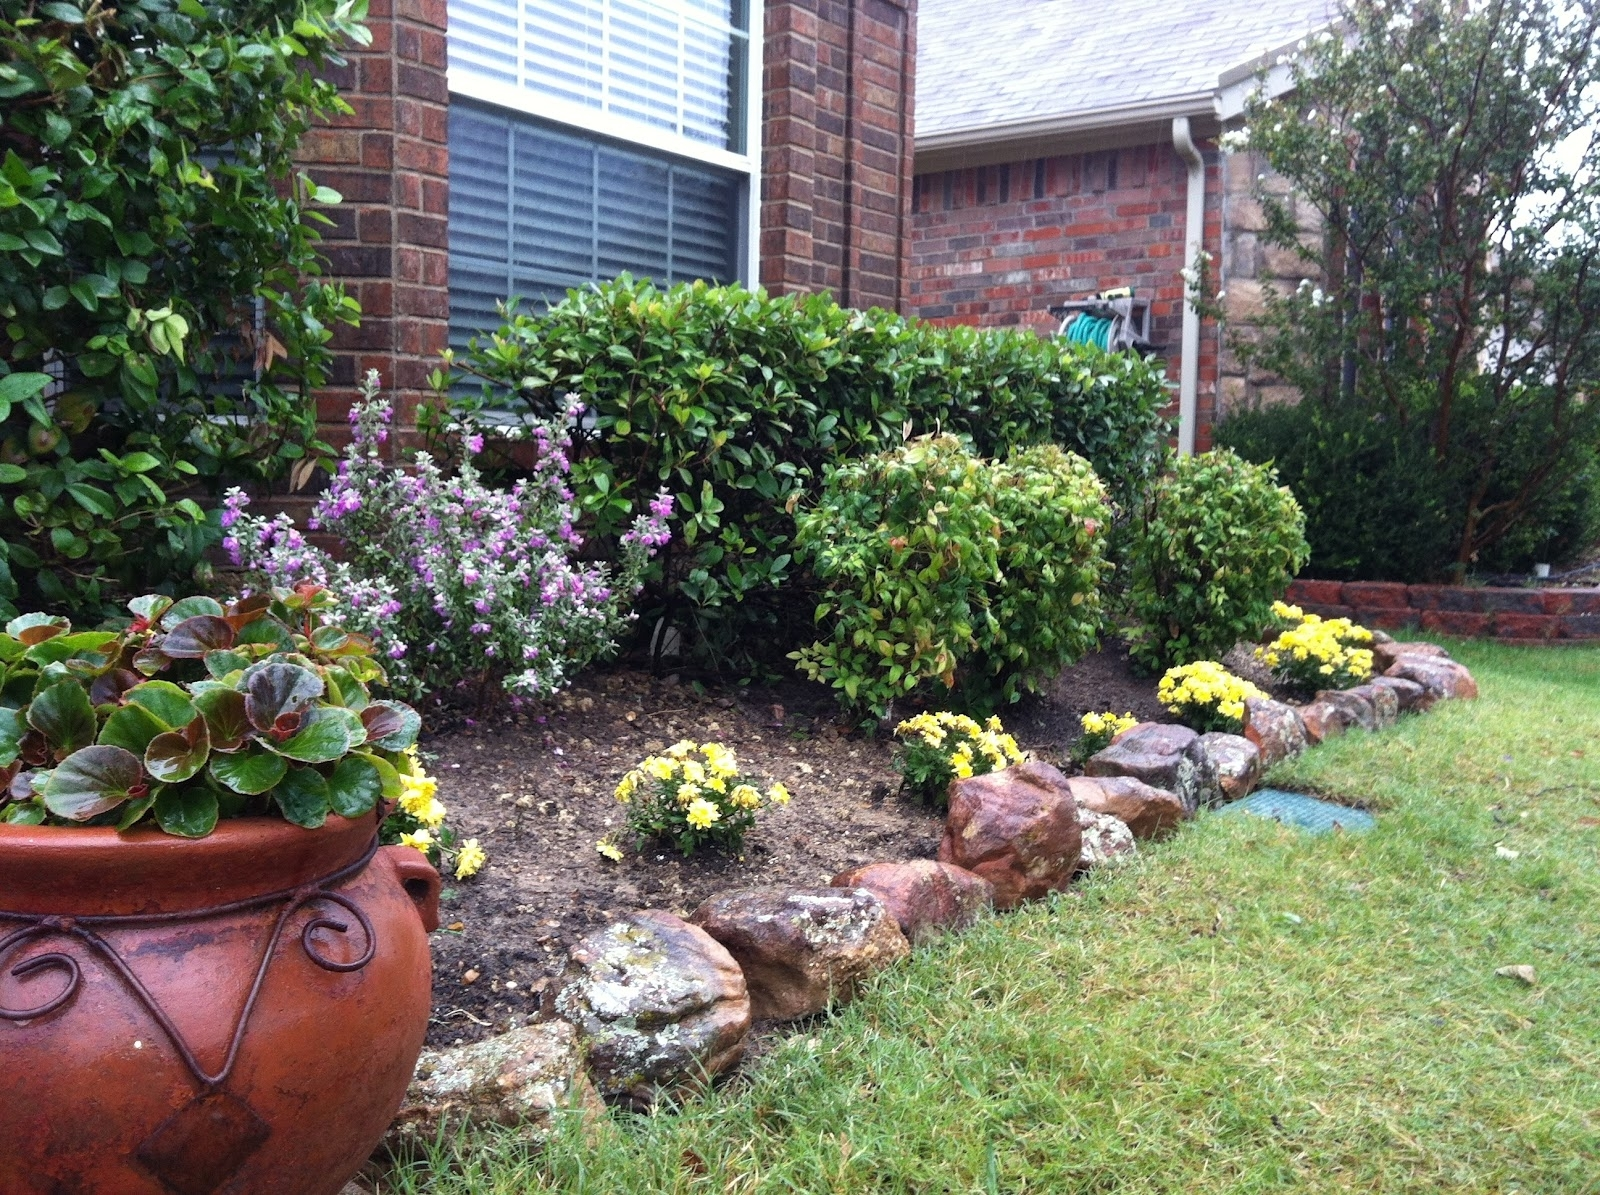 Landscaping Ideas For Front Yard With Rocks Bathroom Design 2017 For Front Yard Landscaping With Rocks Create Front Yard Landscaping With Rocks